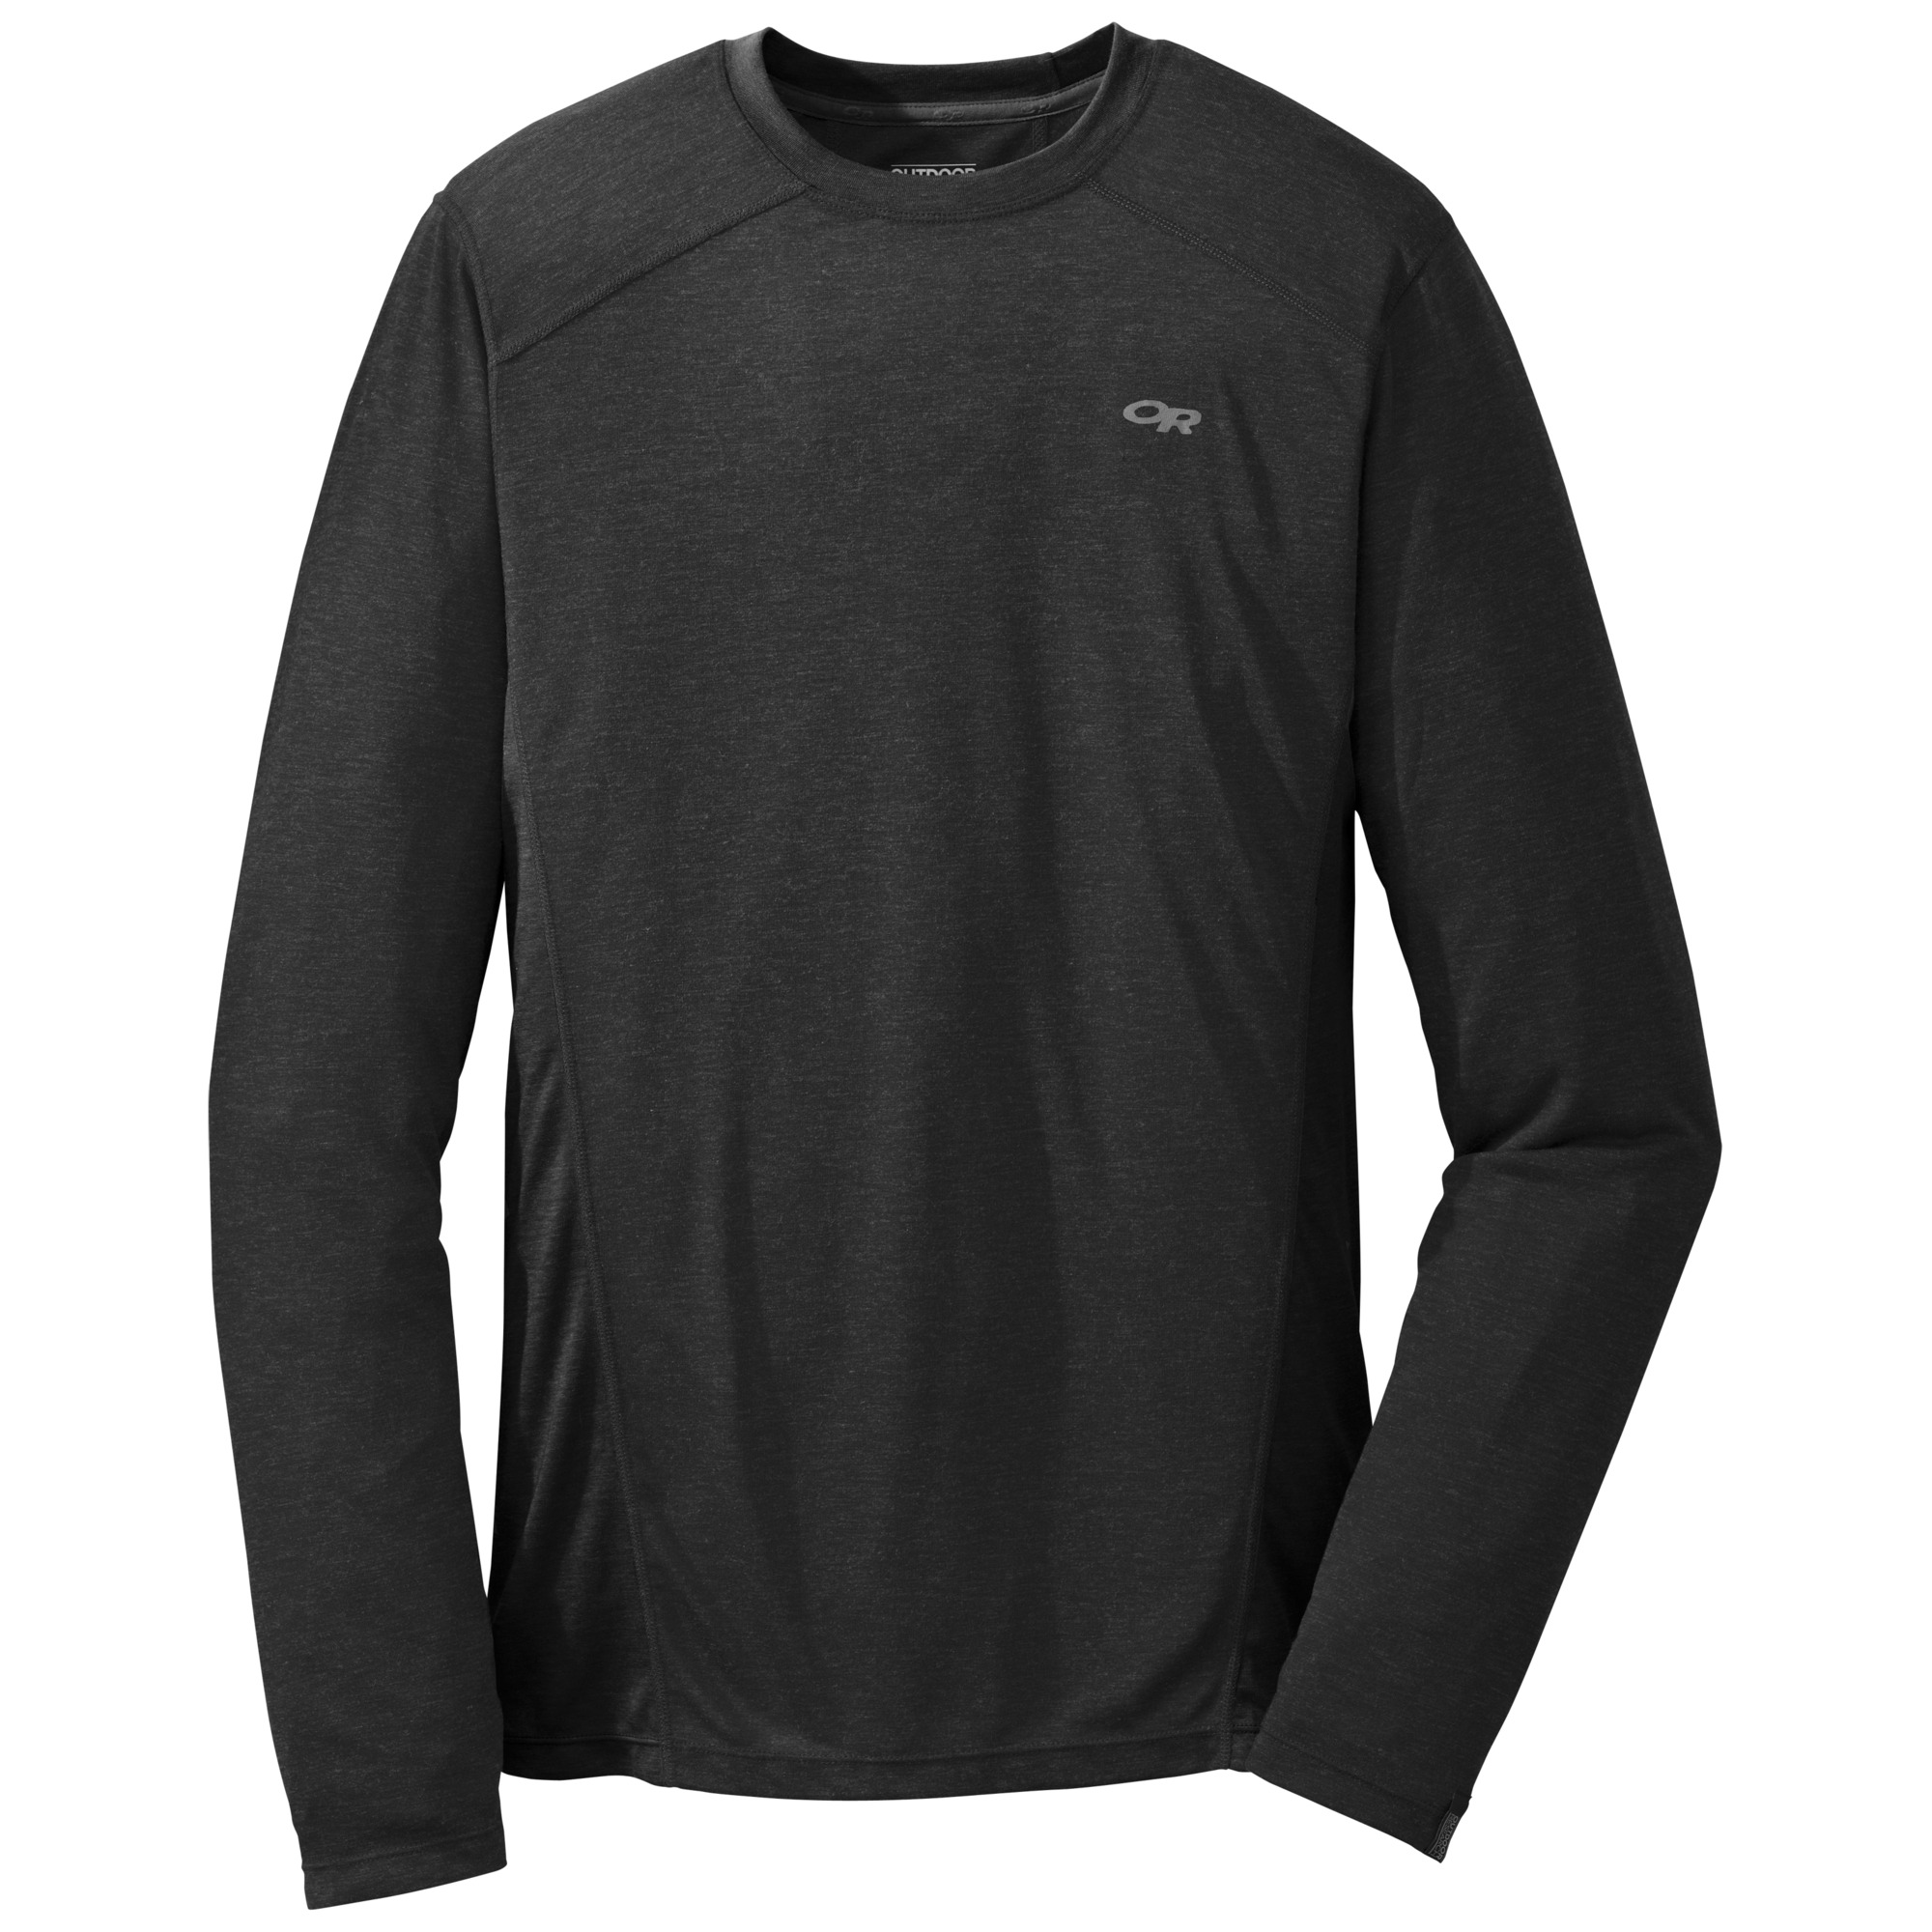 27b91060638c Men's Sequence L/S Crew™ - black | Outdoor Research